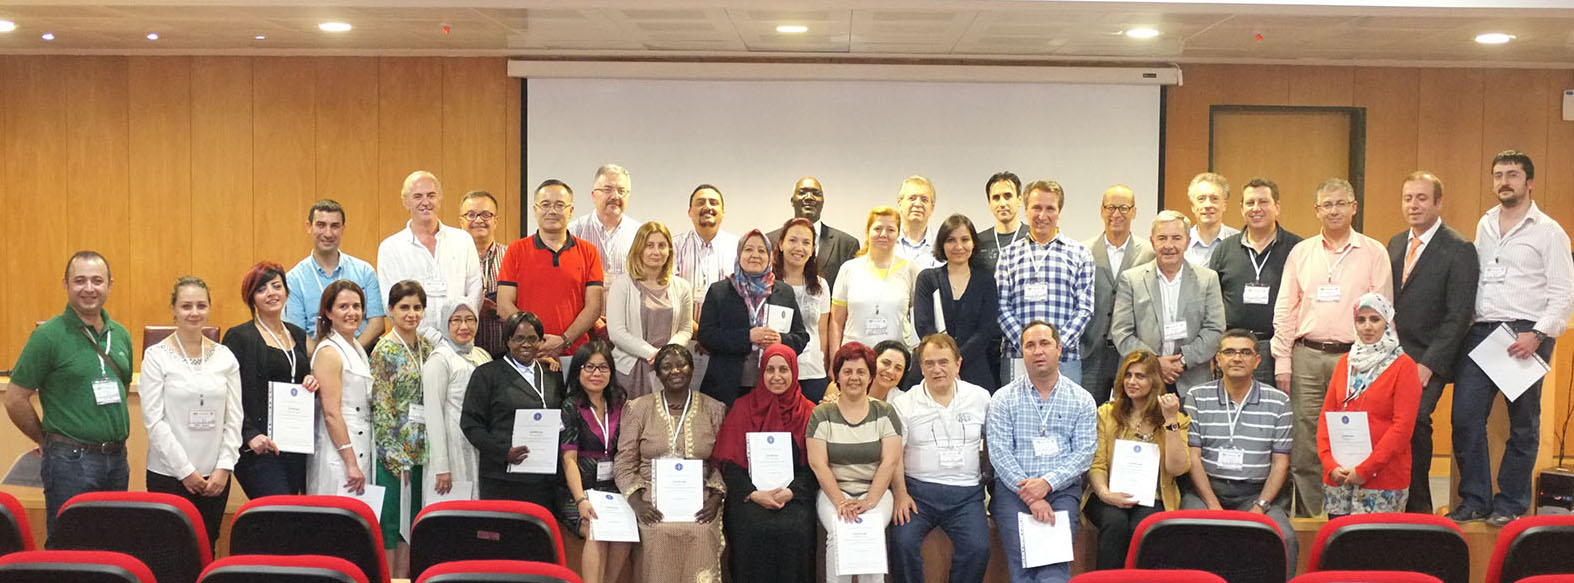 Istanbul-2014-attendees